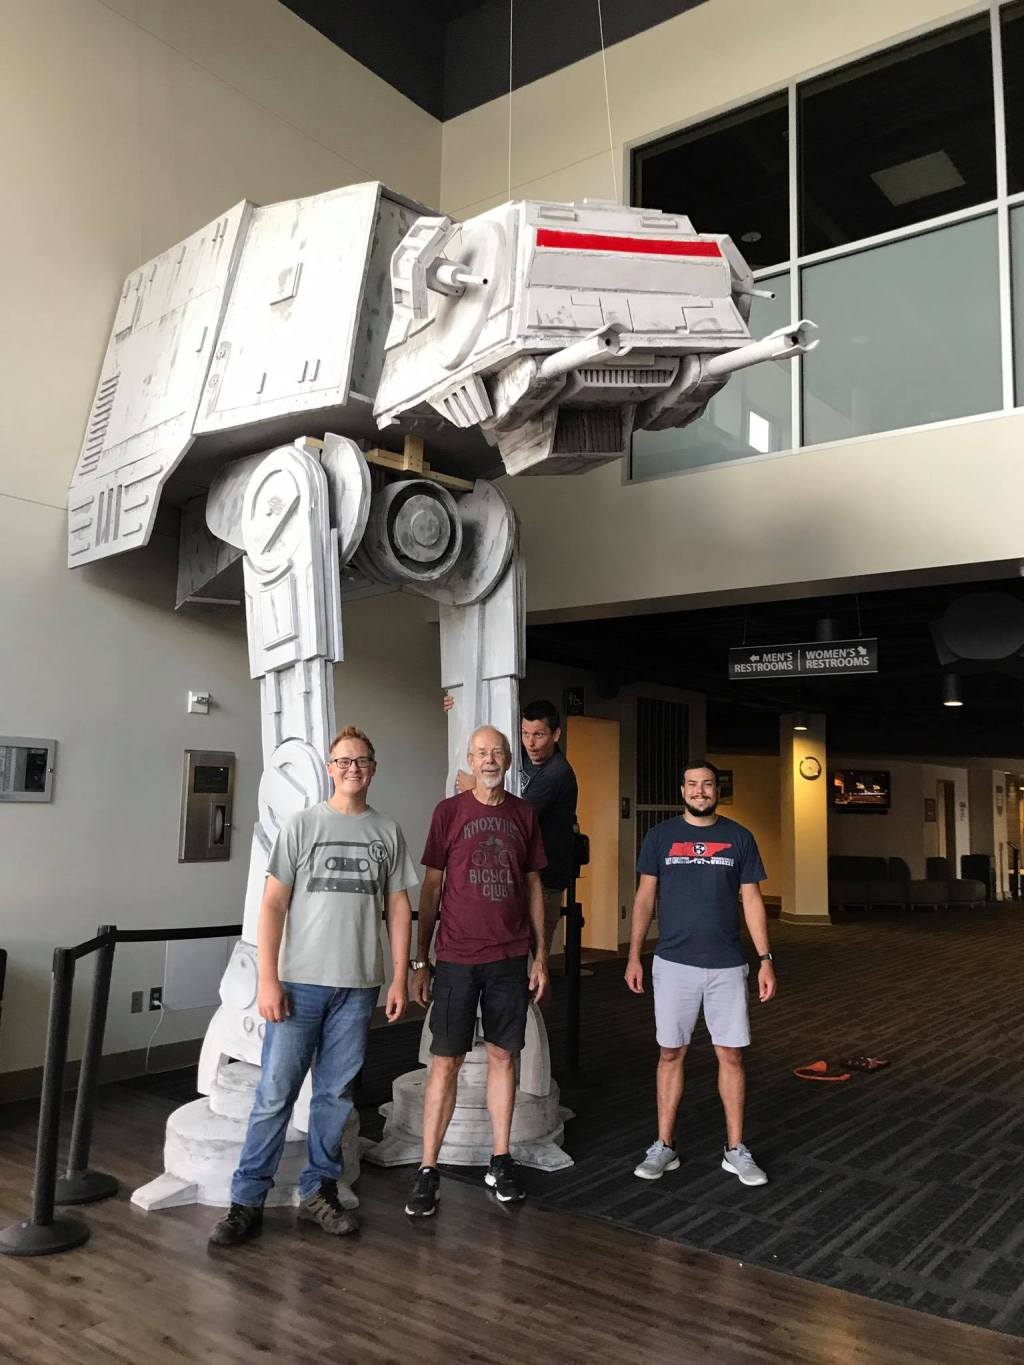 How to Build a Large Scale Star Wars AT-AT Walker Using Foam Insulation Boards